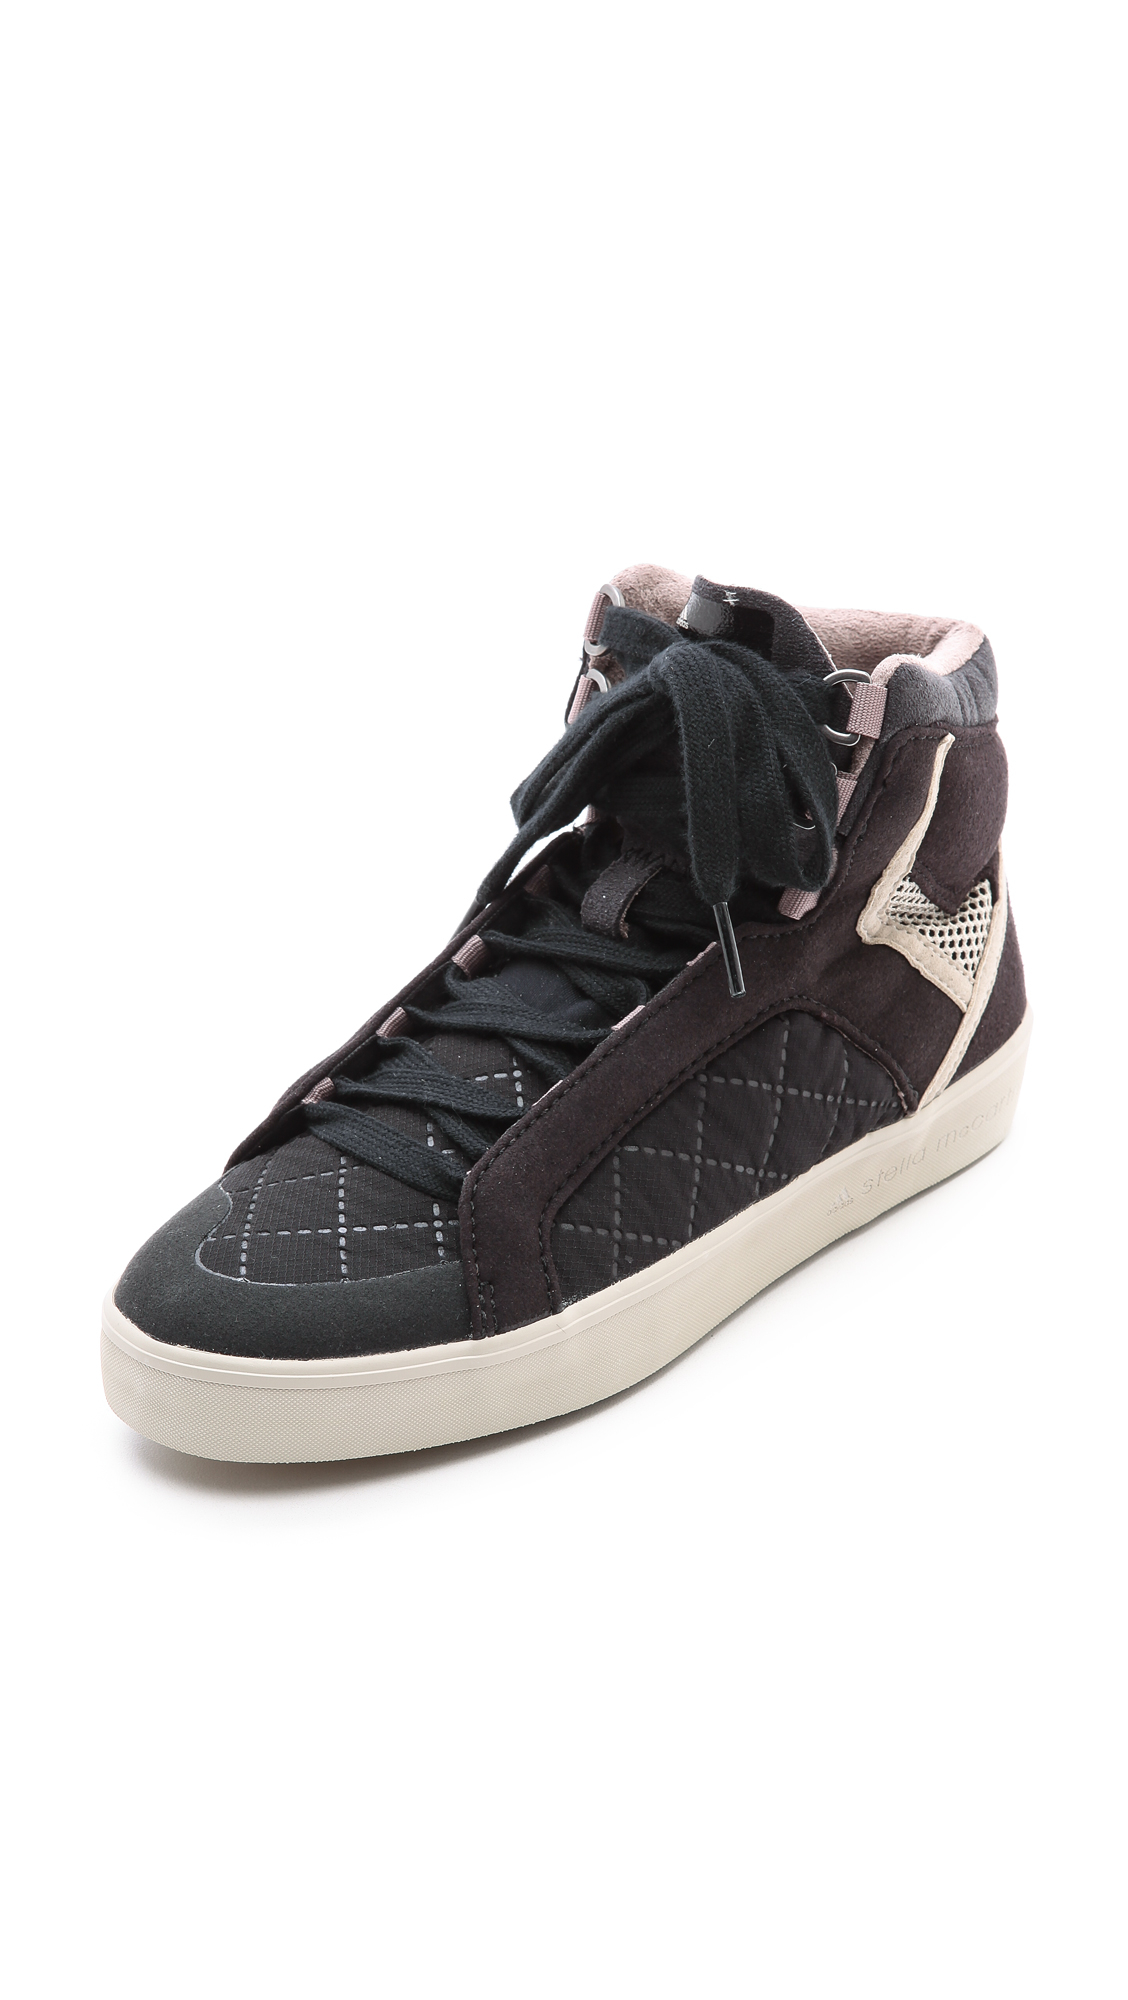 d817cb3f221 Lyst - Adidas By Stella Mccartney Discosura Hiker Sneakers ...